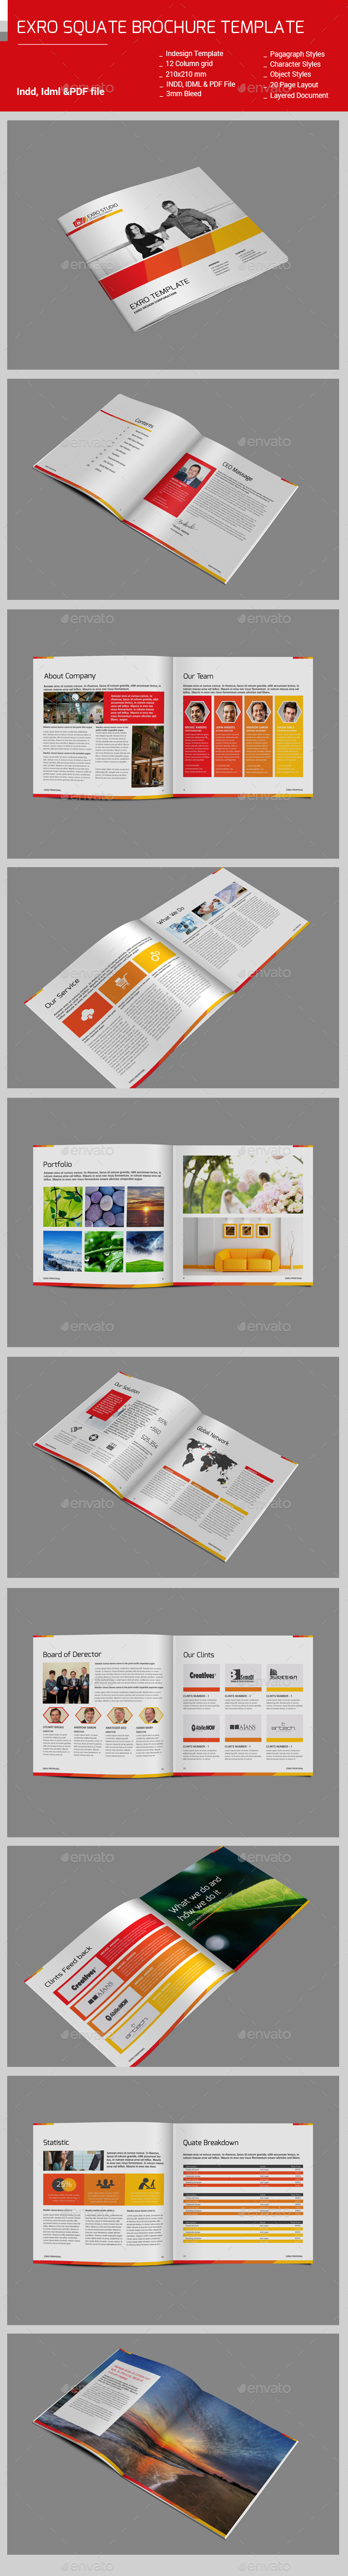 Exro Square BrochureTemplate